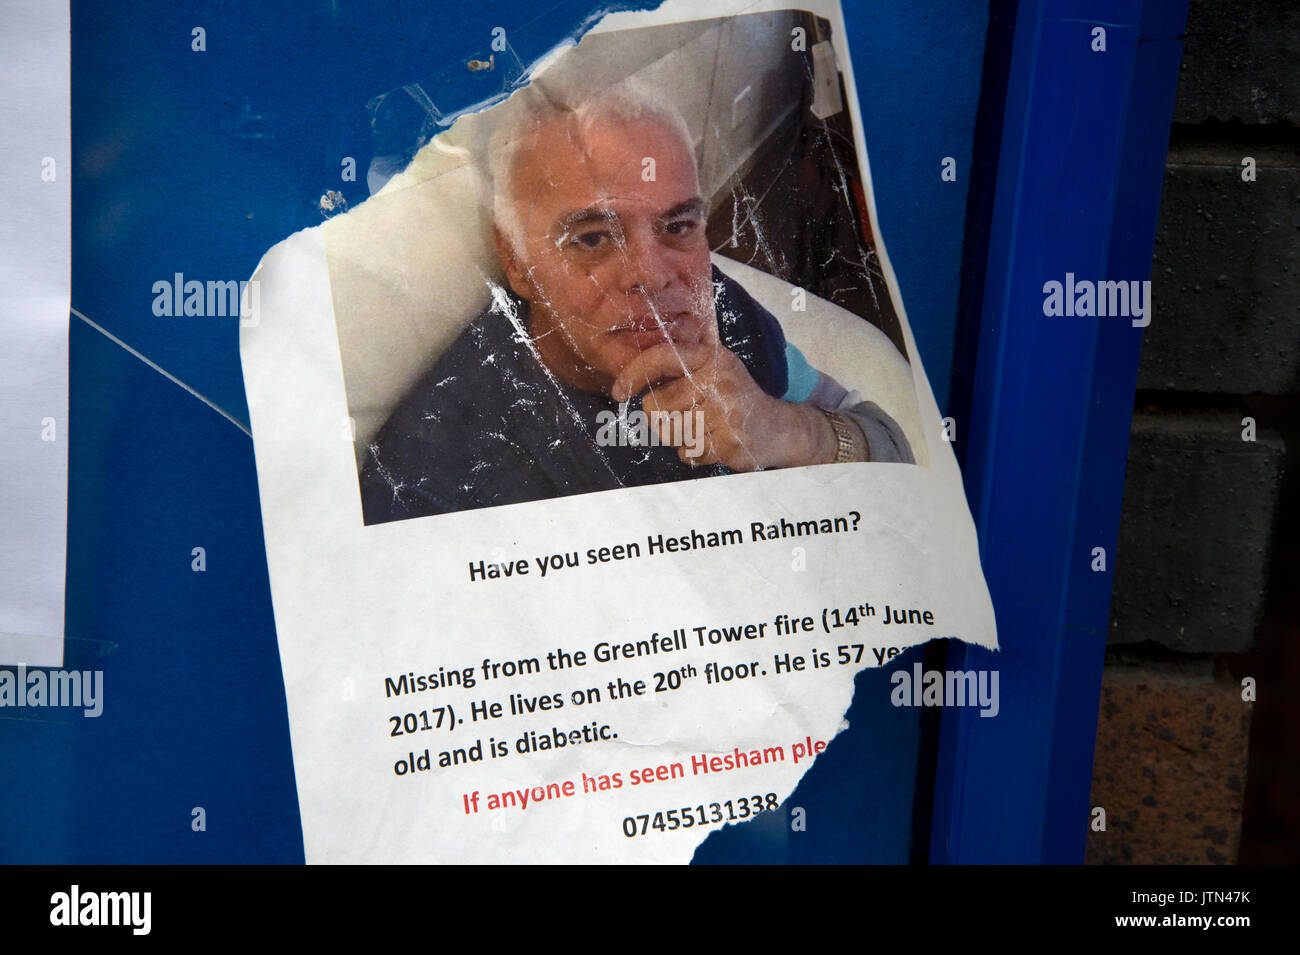 A poster seeking help in finding Hesham Rahman, one of the victims of the catastrophic fire of June 14th 2017 in the Grenfell Tower, West London - Stock Image